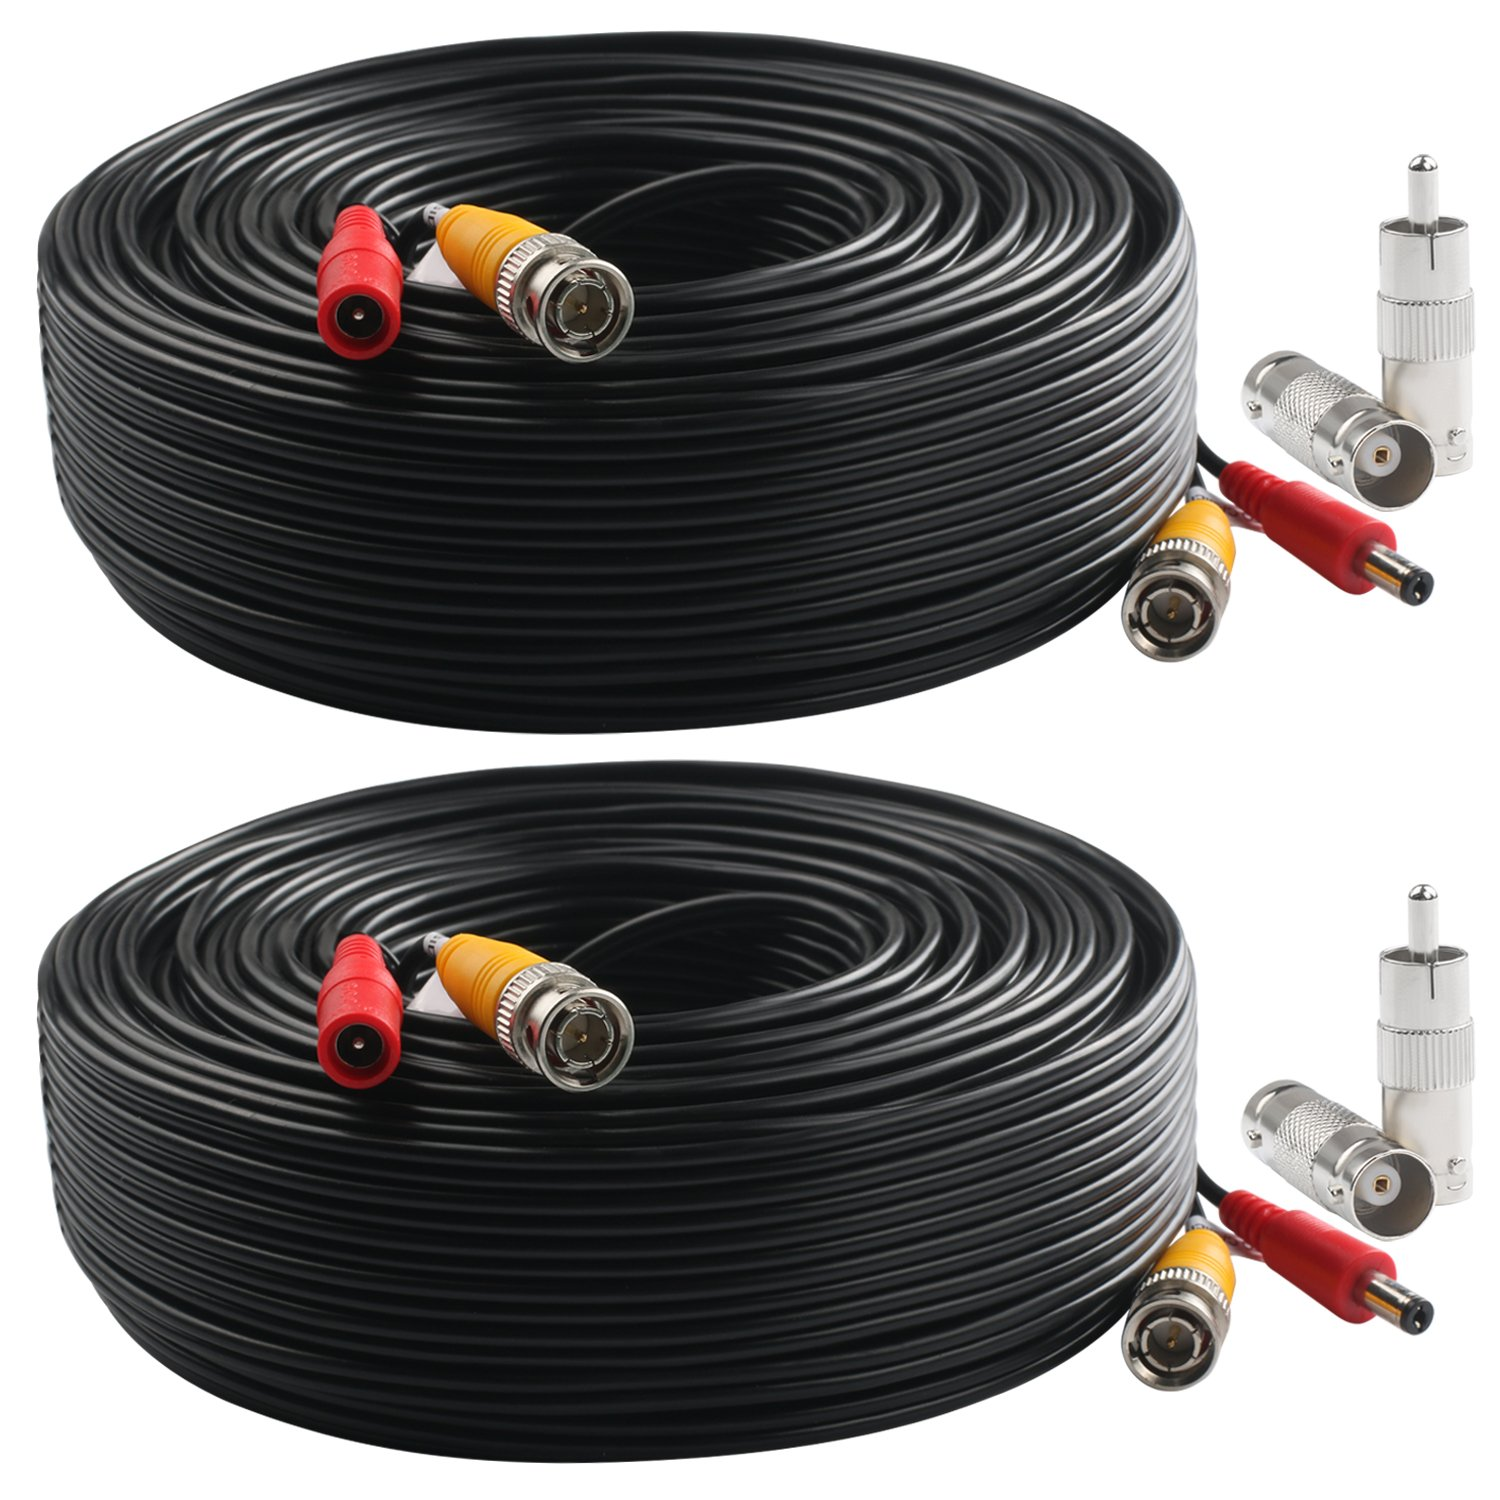 Postta BNC Video Power Cable (2 Pack 150 Feet) Pre-made All-in-One Video Security Camera Cable Wire with Four Connectors for CCTV DVR Surveillance System